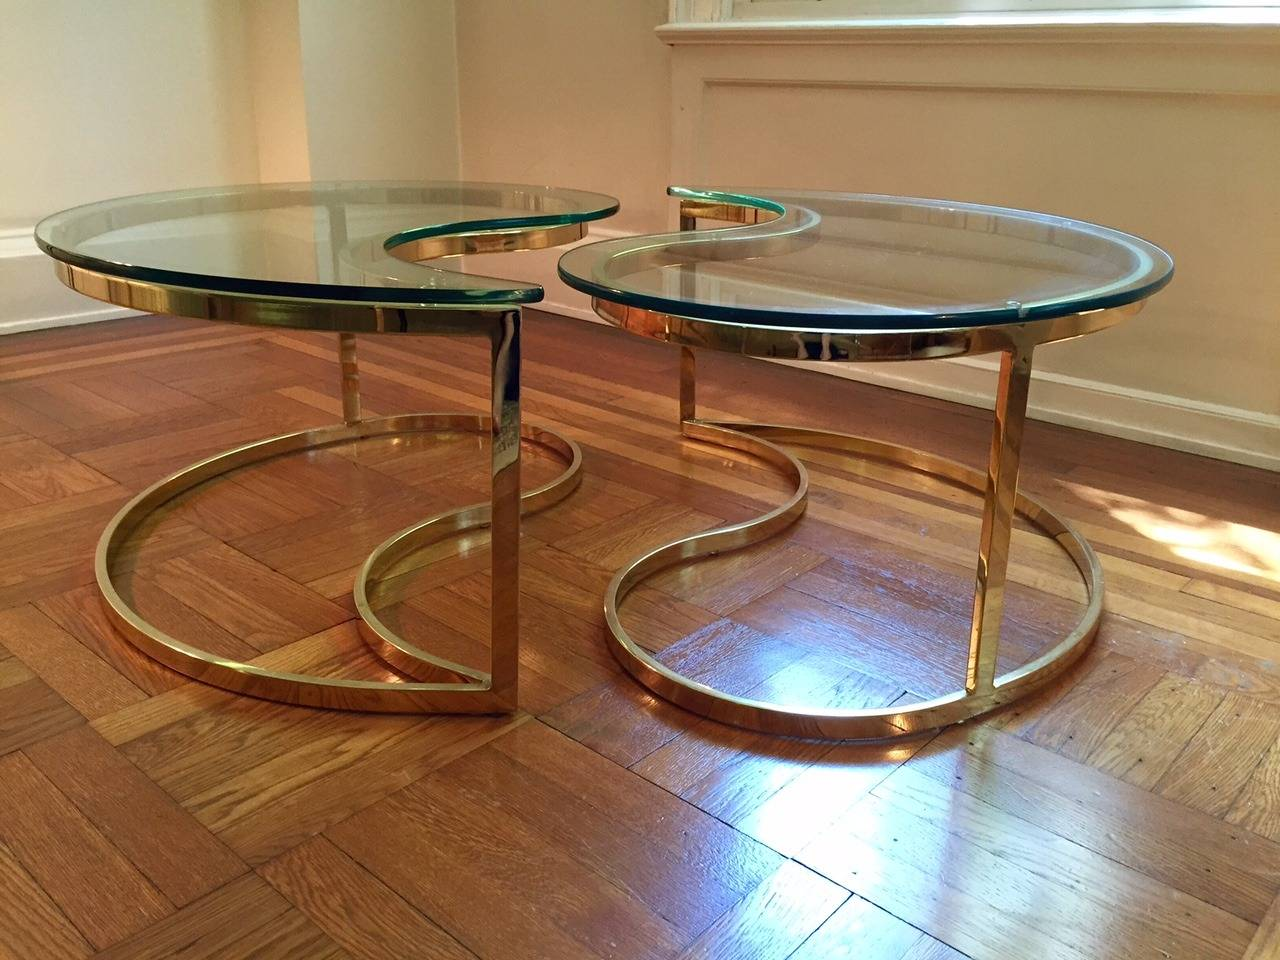 chic ying yang motiffe brass and glass coffee cocktail table for